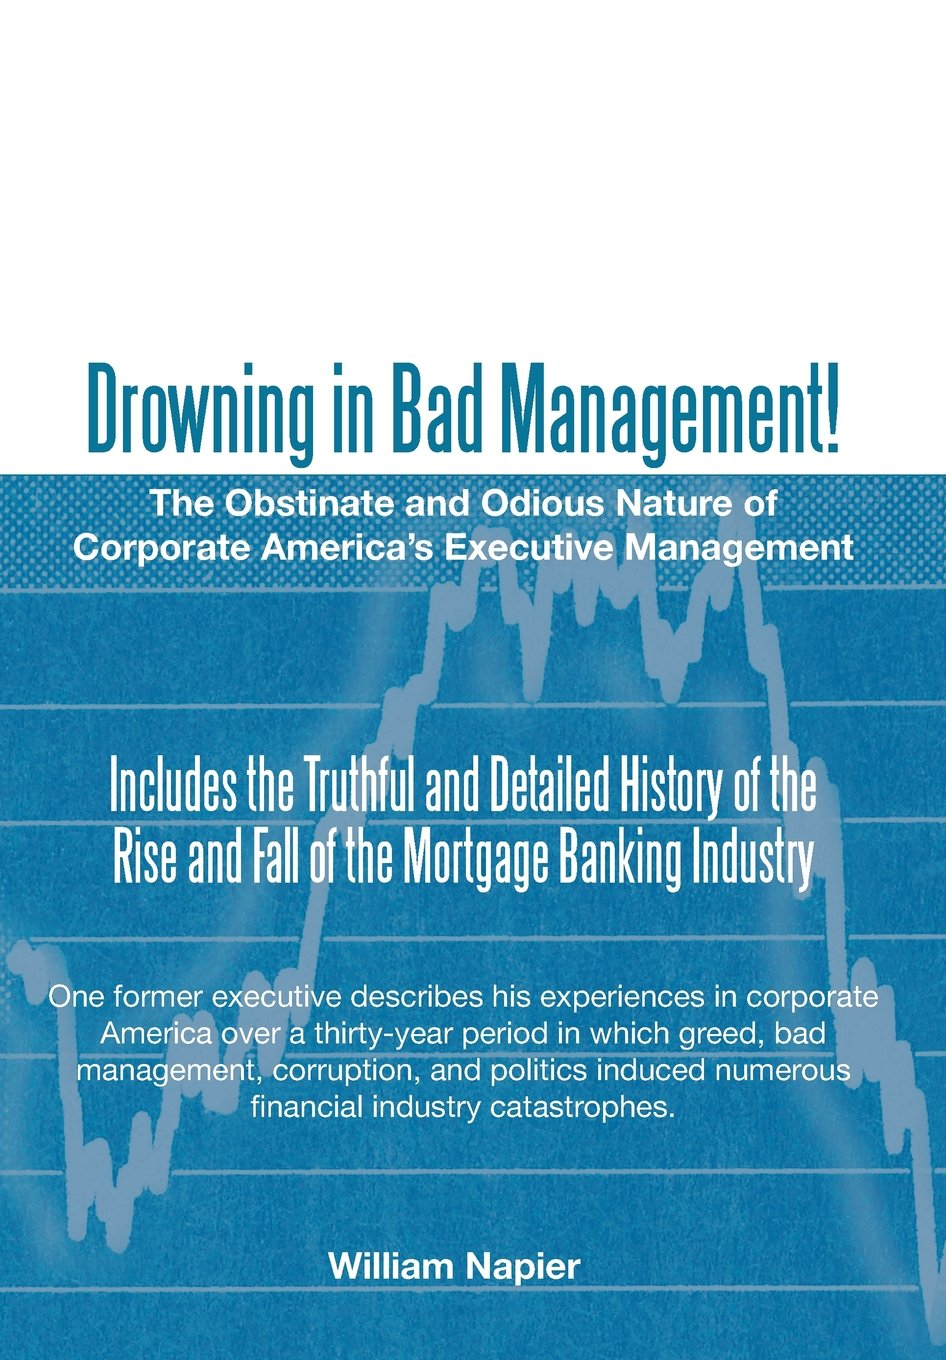 Read Online Drowning in Bad Management!: The Obstinate and Odious Nature of Corporate America's Executive Management pdf